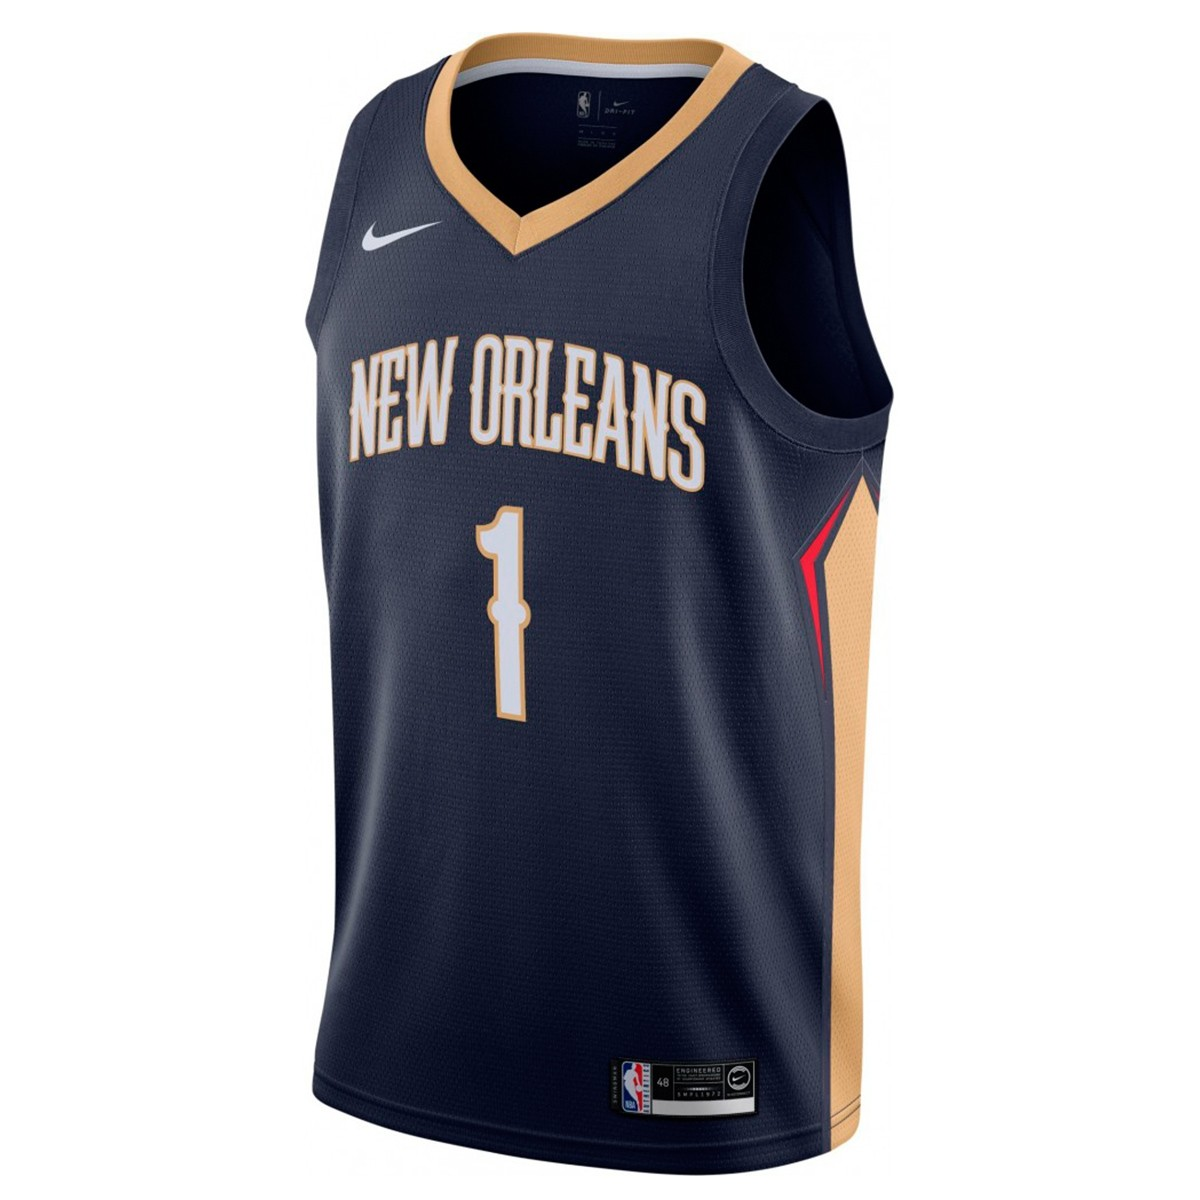 Nike NBA Pelicans Swingman Jersey Williamson 'Icon Edition'